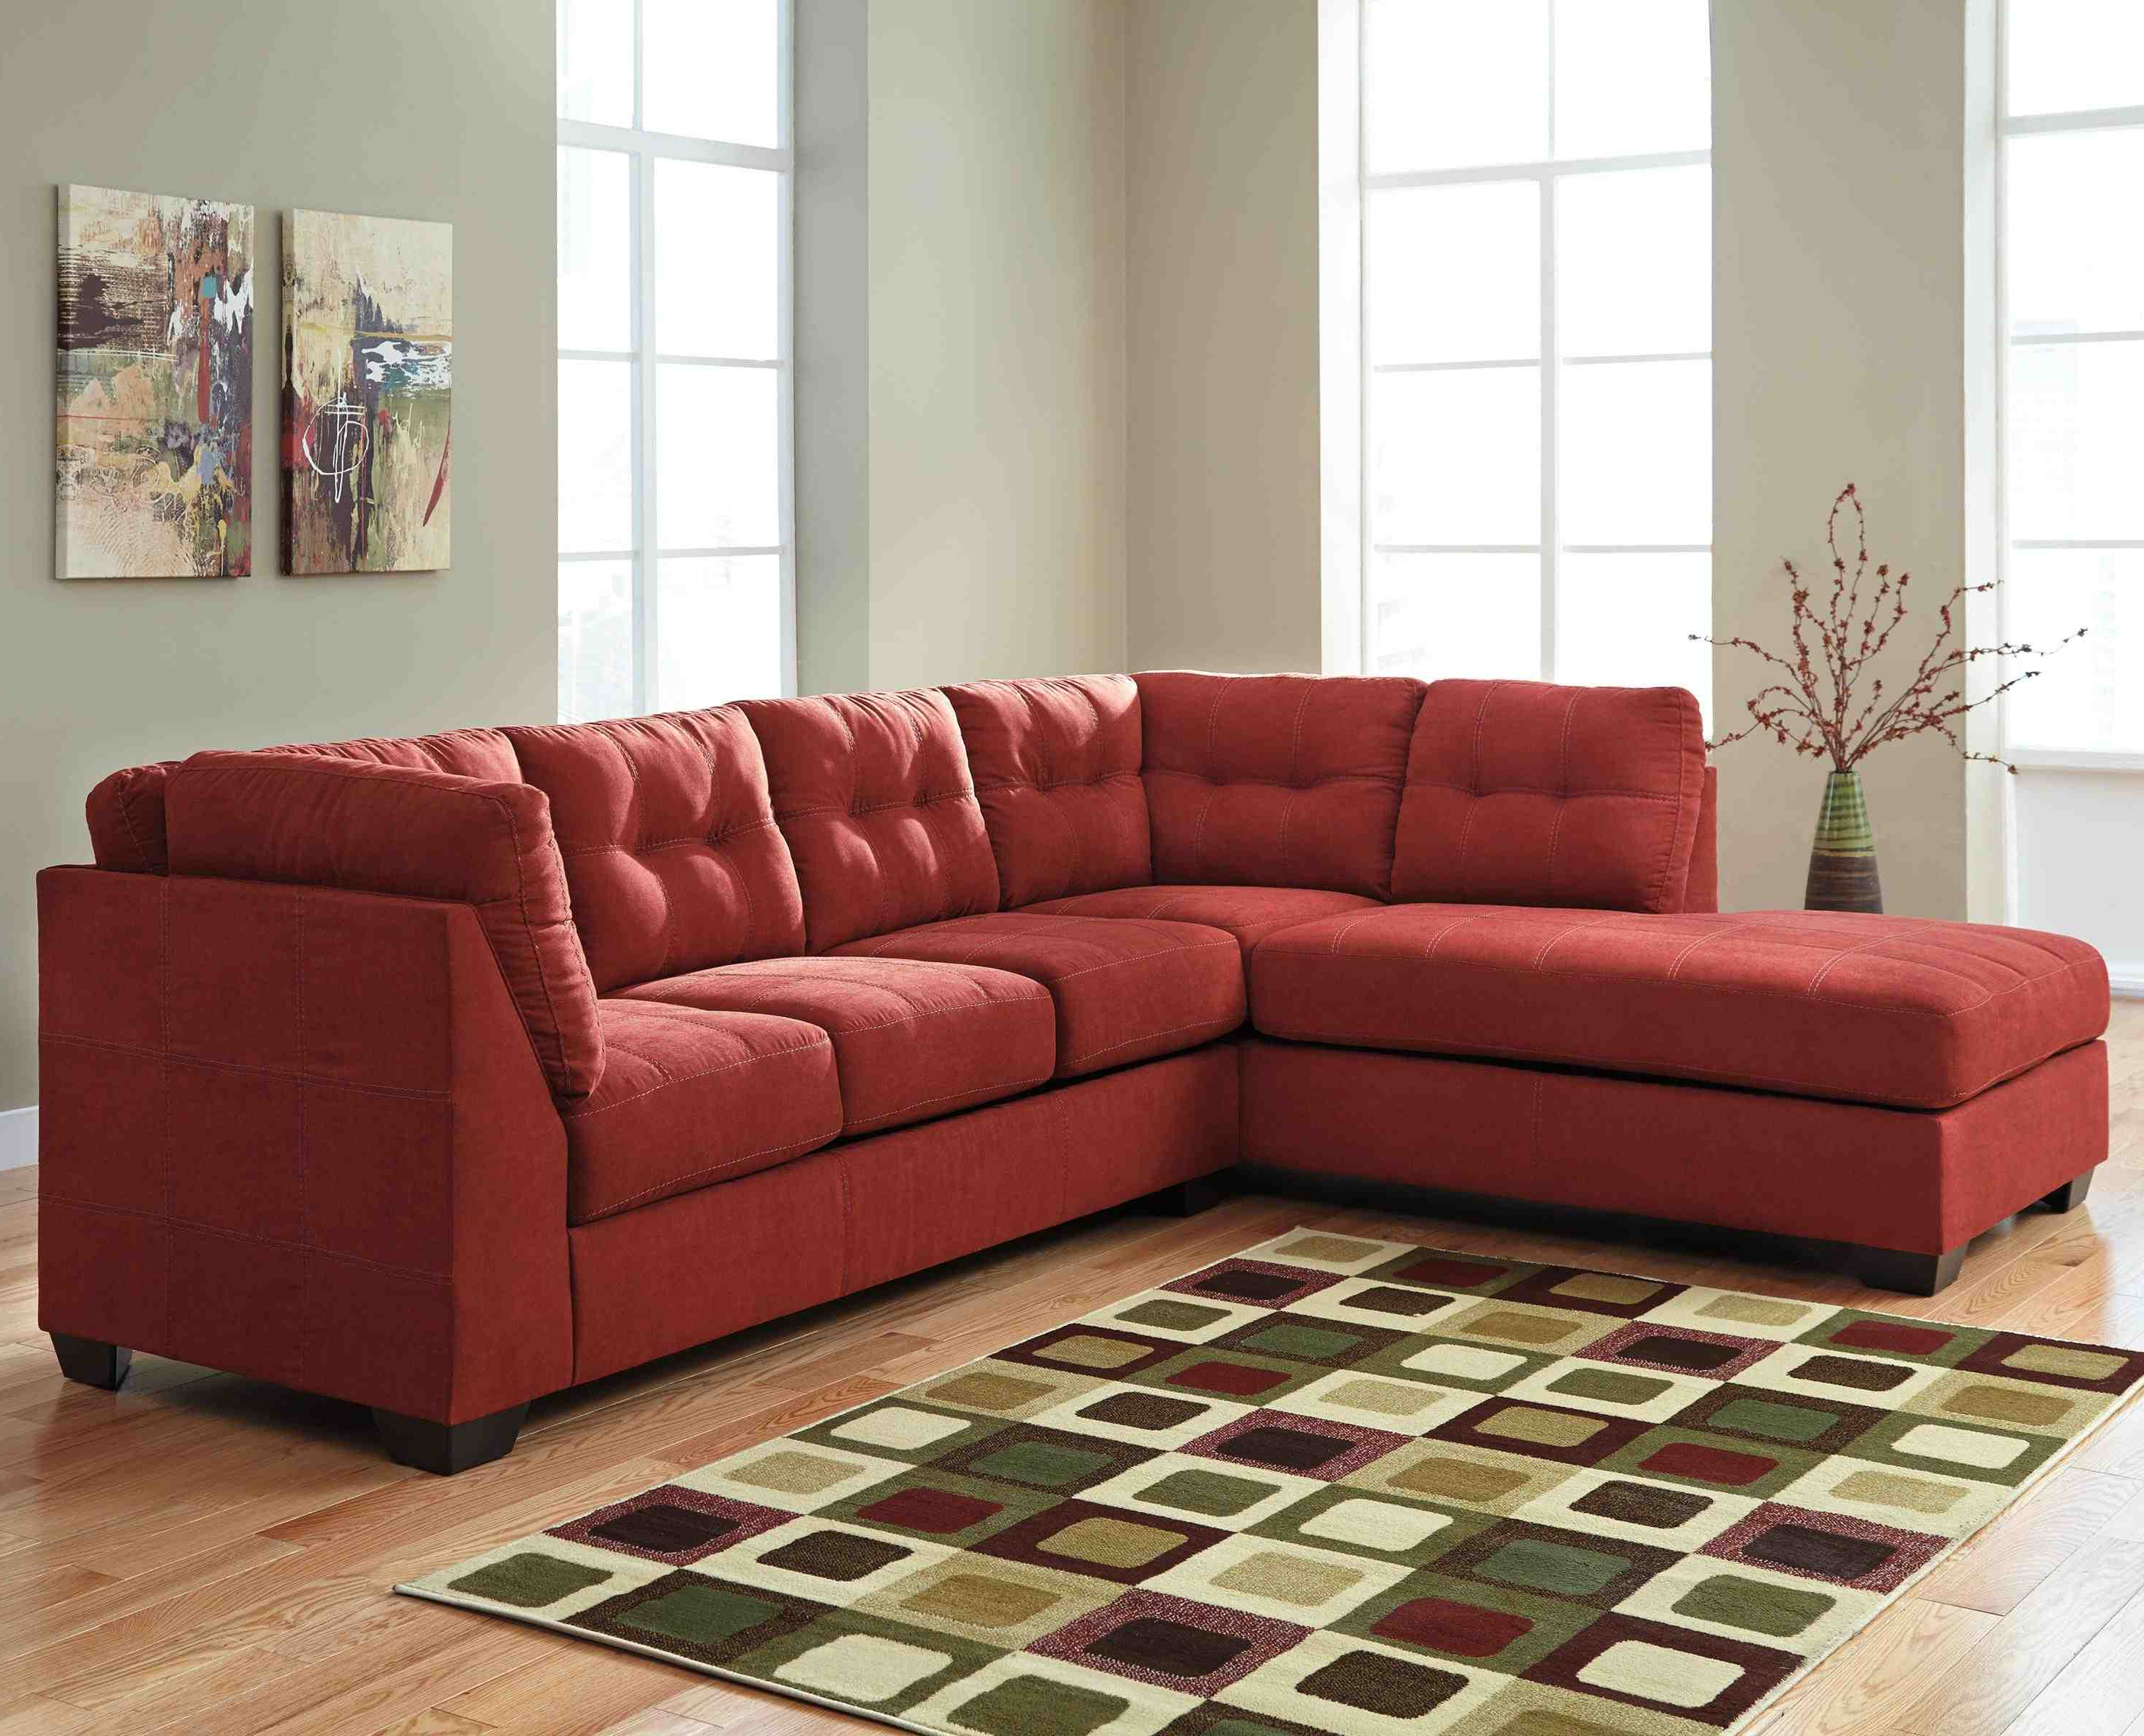 Delano 2 Piece Sectional W/laf Oversized Chaise Living Spaces Within Well Known Delano 2 Piece Sectionals With Laf Oversized Chaise (View 6 of 20)